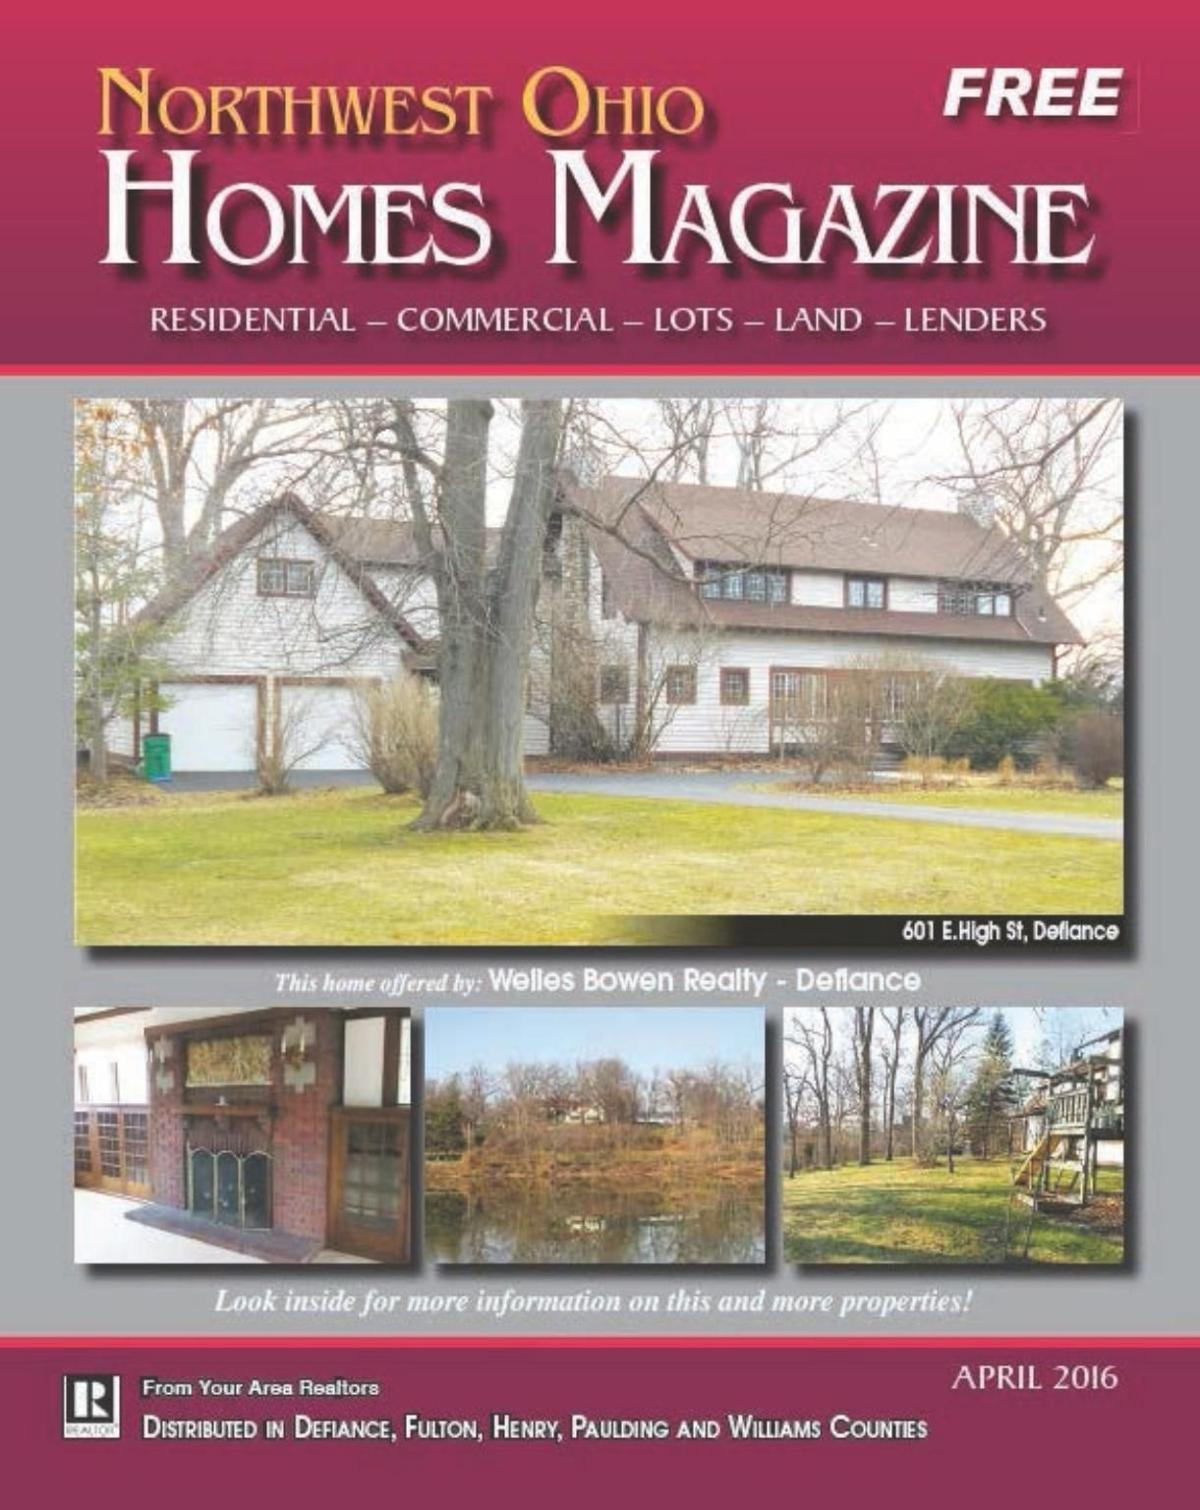 NWO Homes Magazine Example